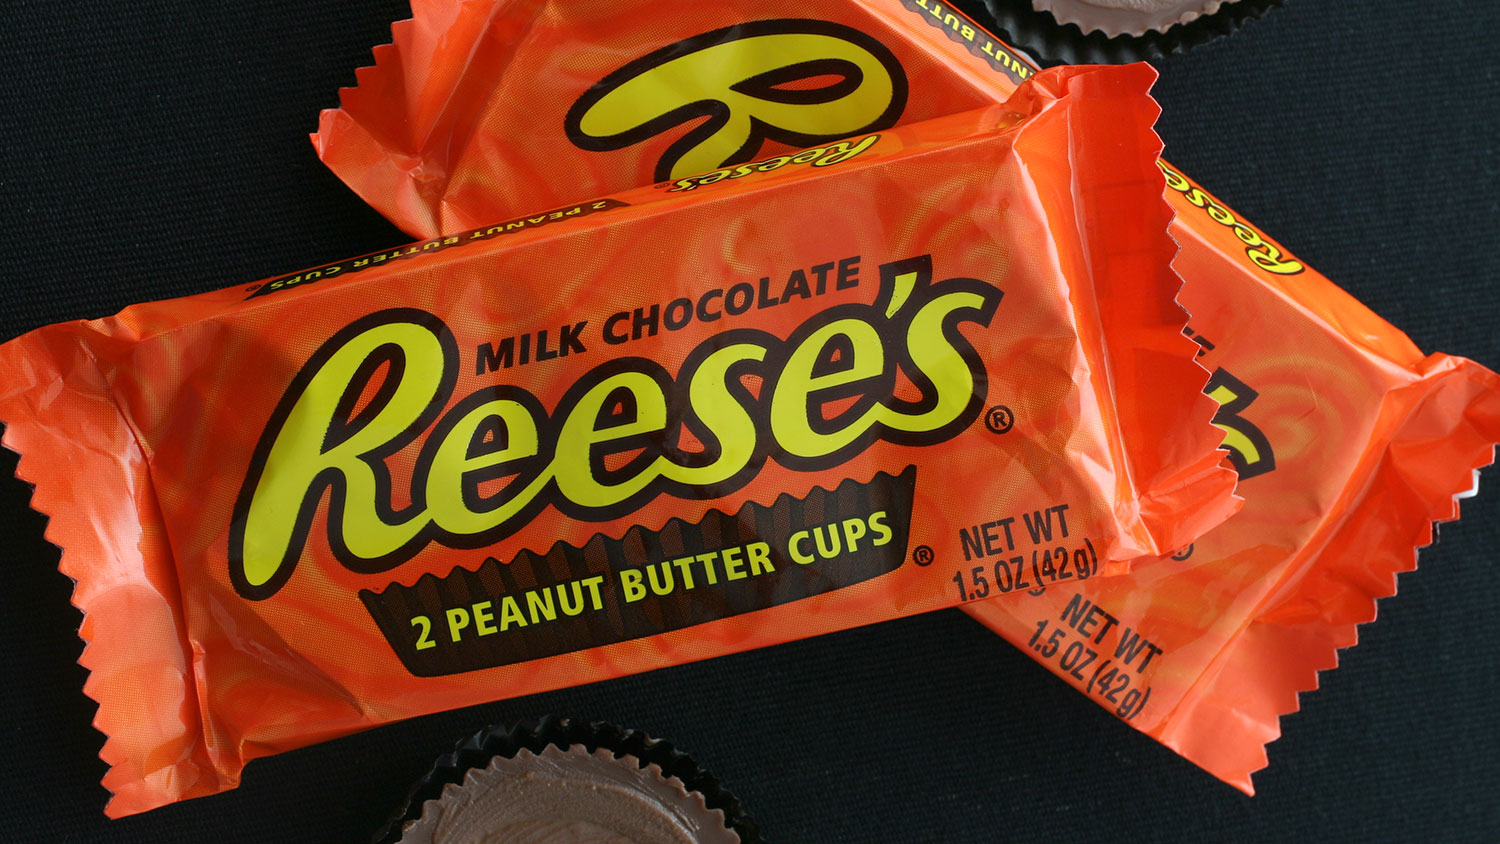 dwight howard favorite candy reese's